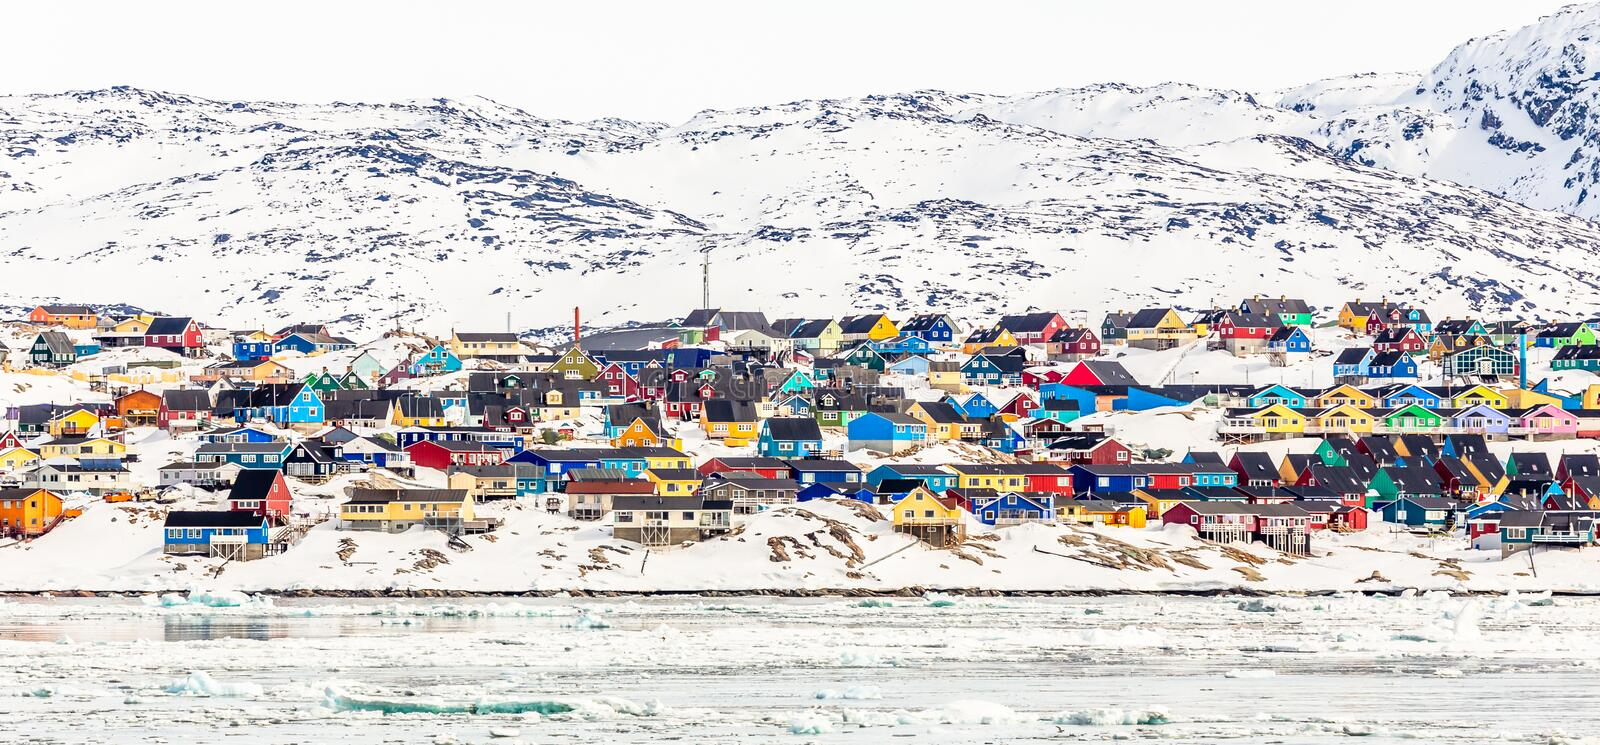 Arctic city center panorama with colorful Inuit houses on the rocky hills covered in snow with snow and mountain in the background. Ilulissat, Avannaata royalty free stock photos